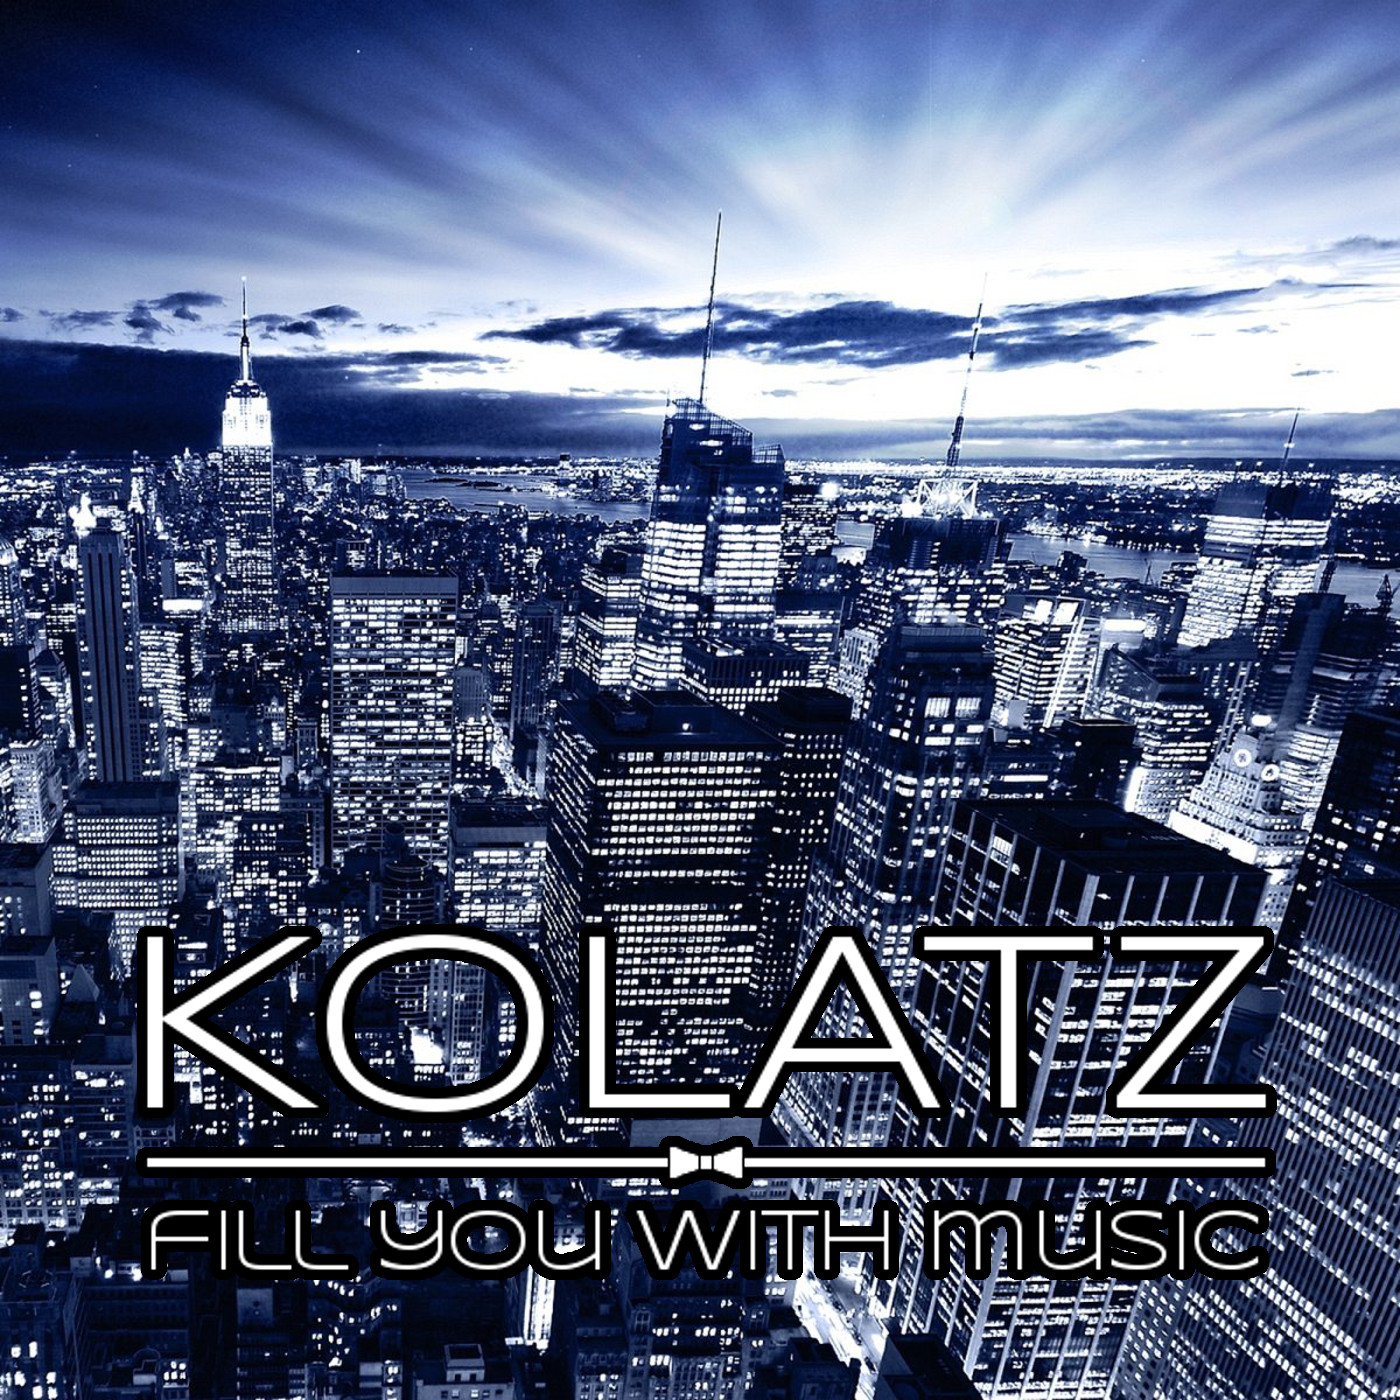 Kolatz - Fill you with music